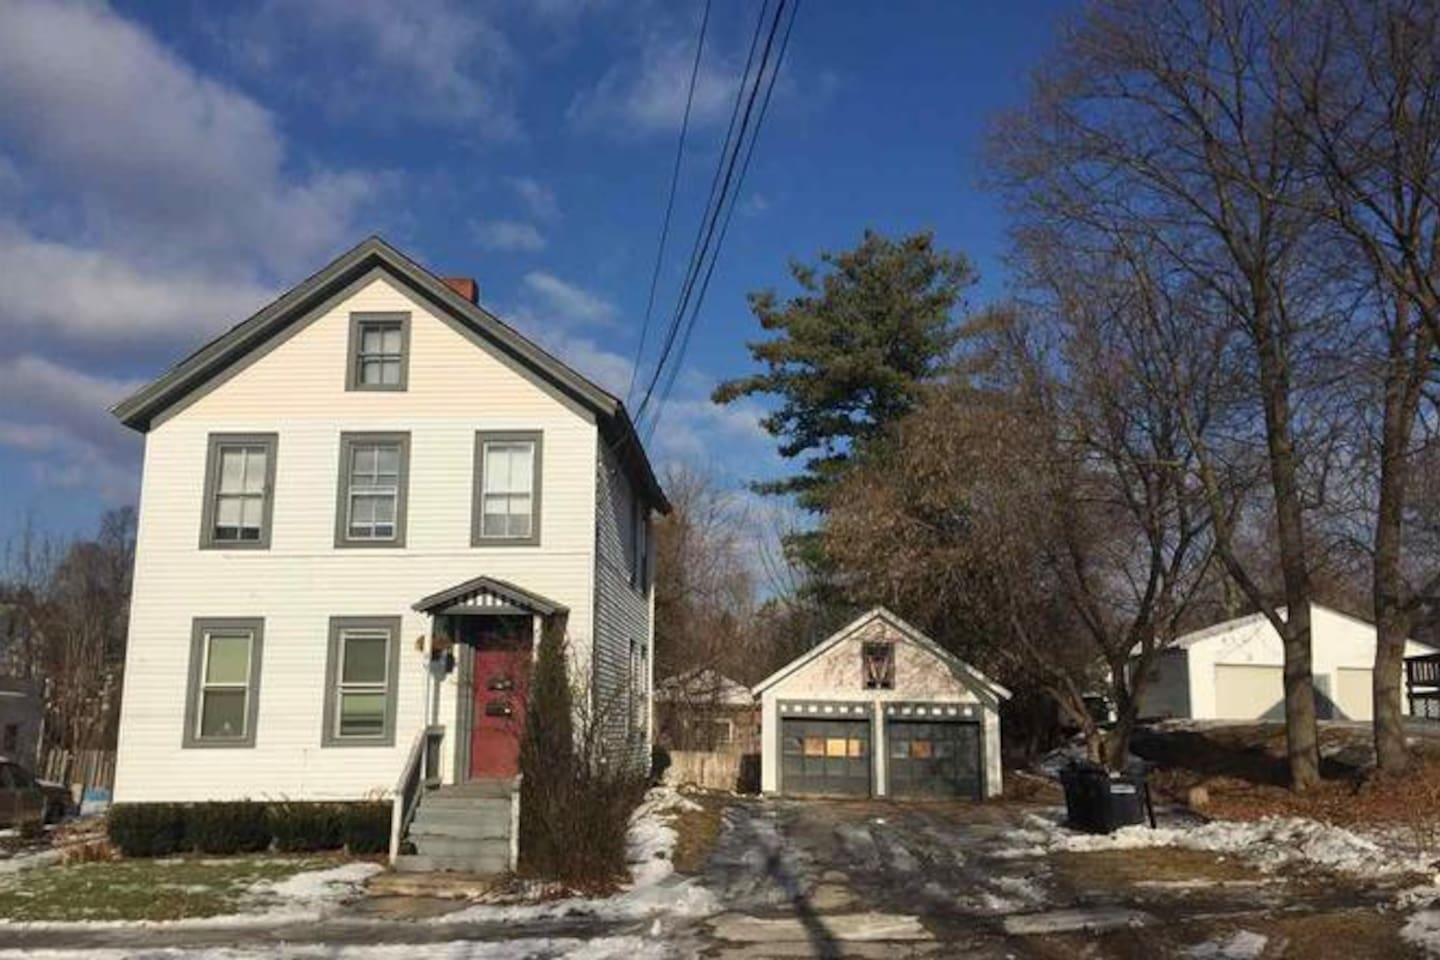 Front view of your Vermont Air-bnb!  You can park in the driveway and enter via the front red door.